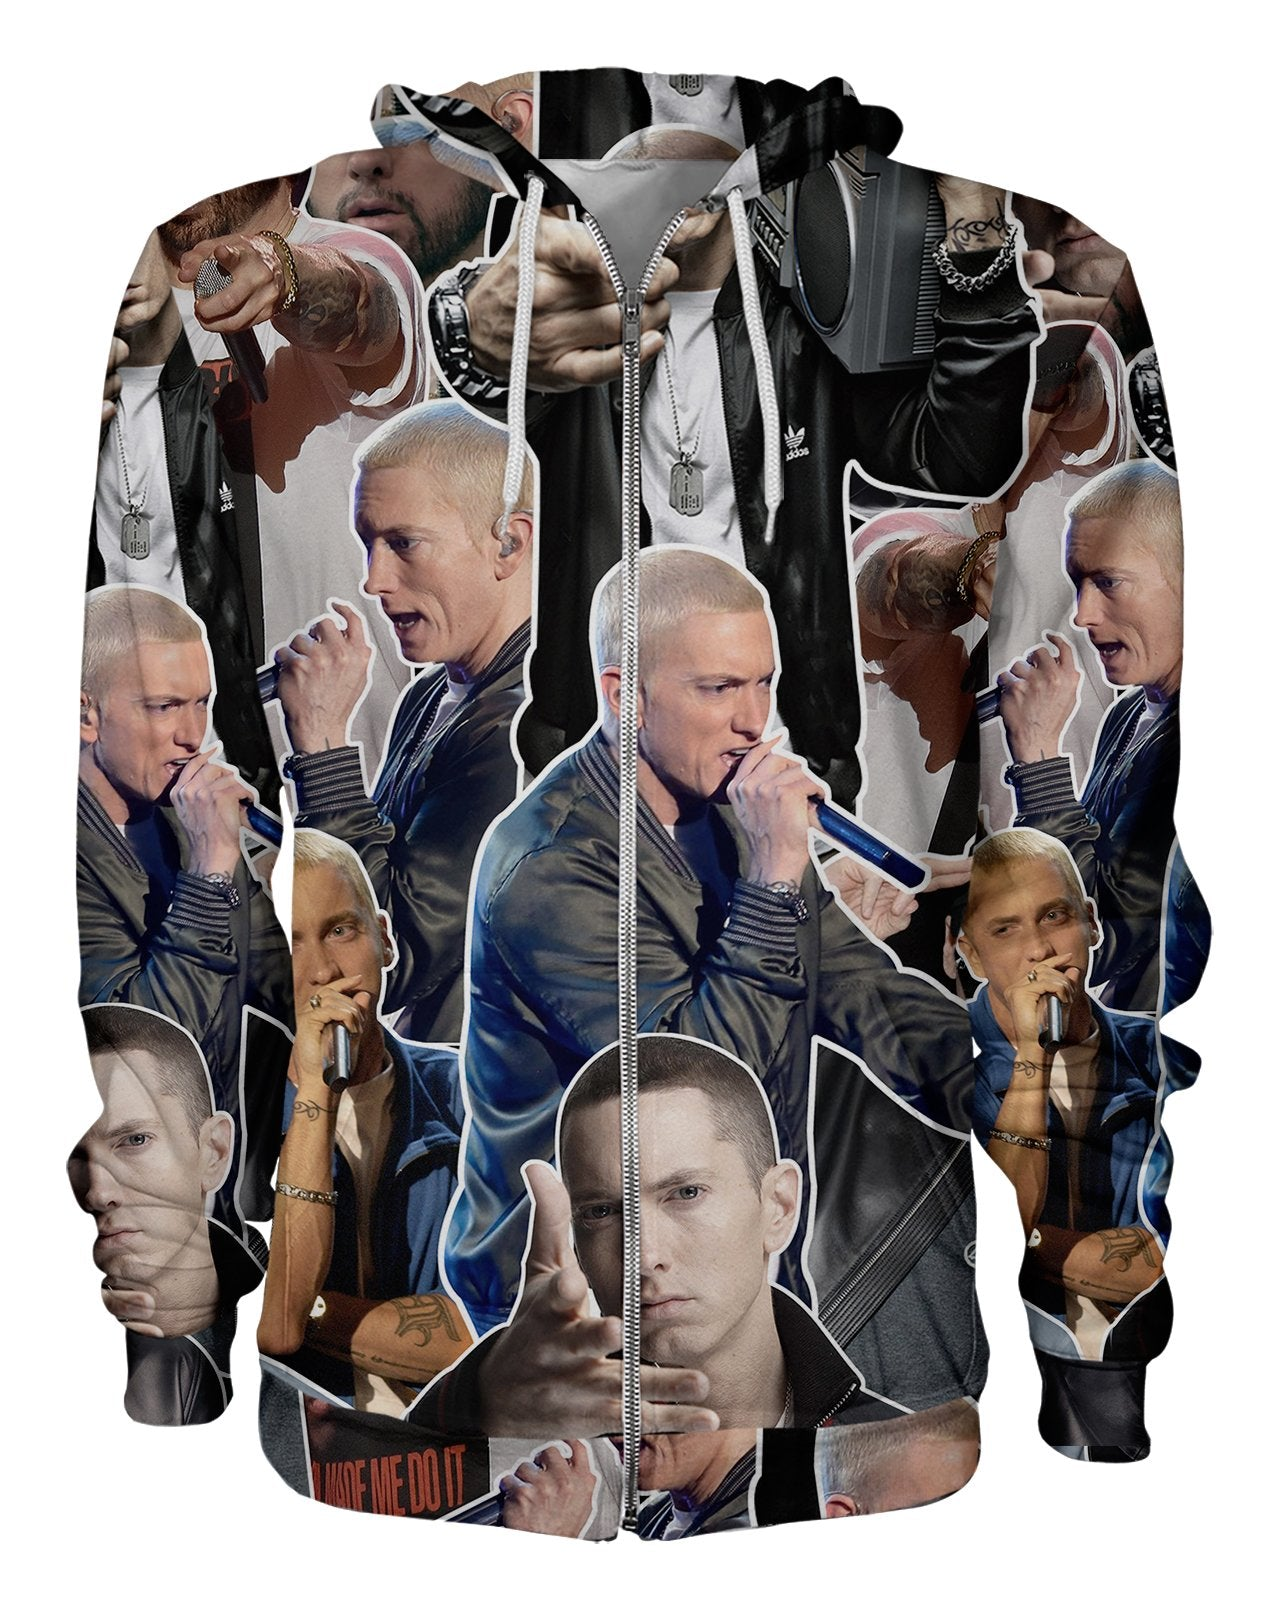 Eminem printed all over in HD on premium fabric. Handmade in California.